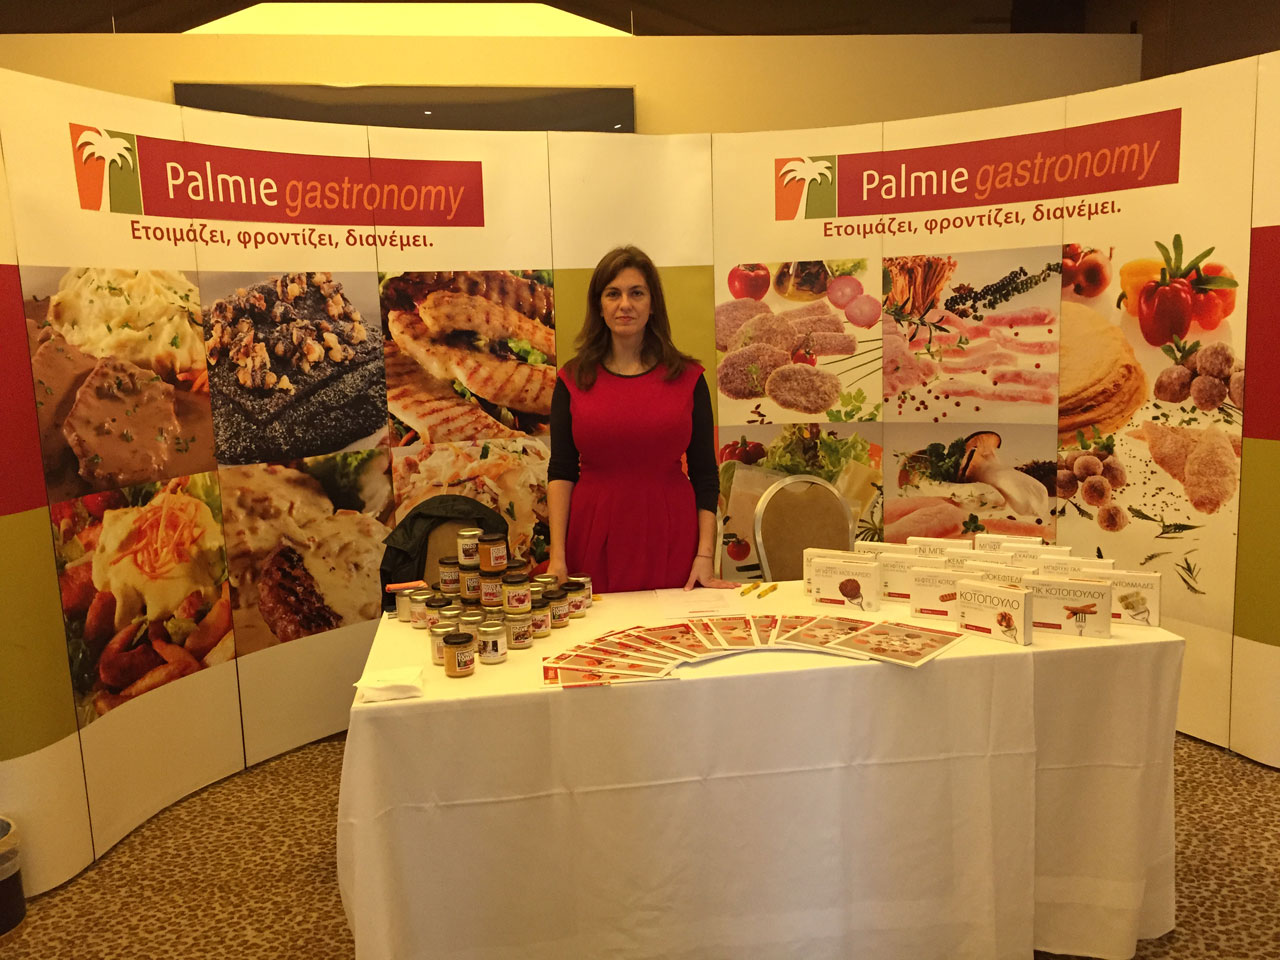 Η Palmie gastronomy στην SUPER MARKET FORUM 2015